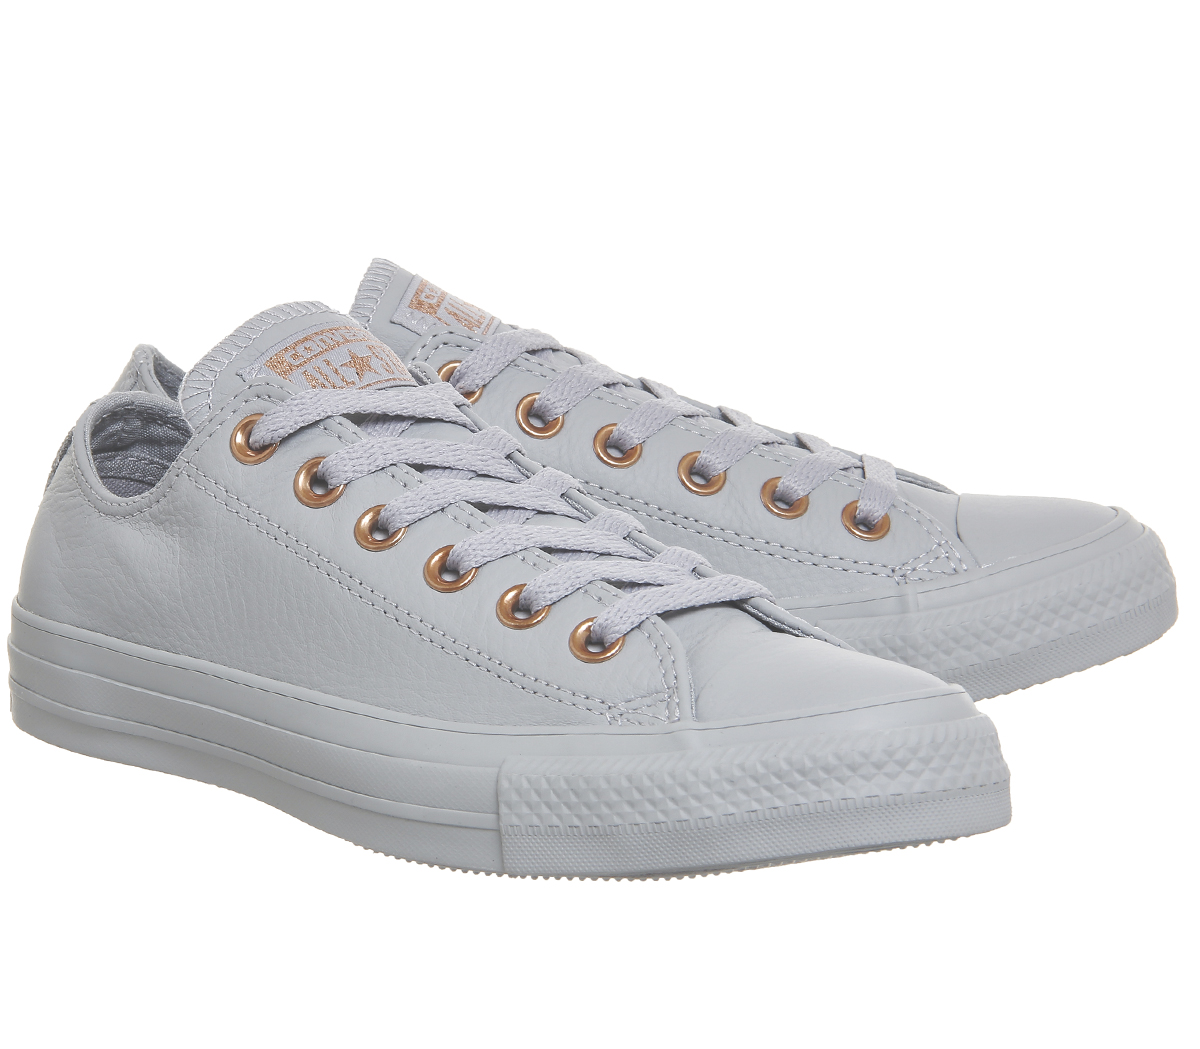 efeeb295cb79 Sentinel Womens Converse All Star Low Leather WOLF GREY BLUSH GOLD  EXCLUSIVE Trainers Sho